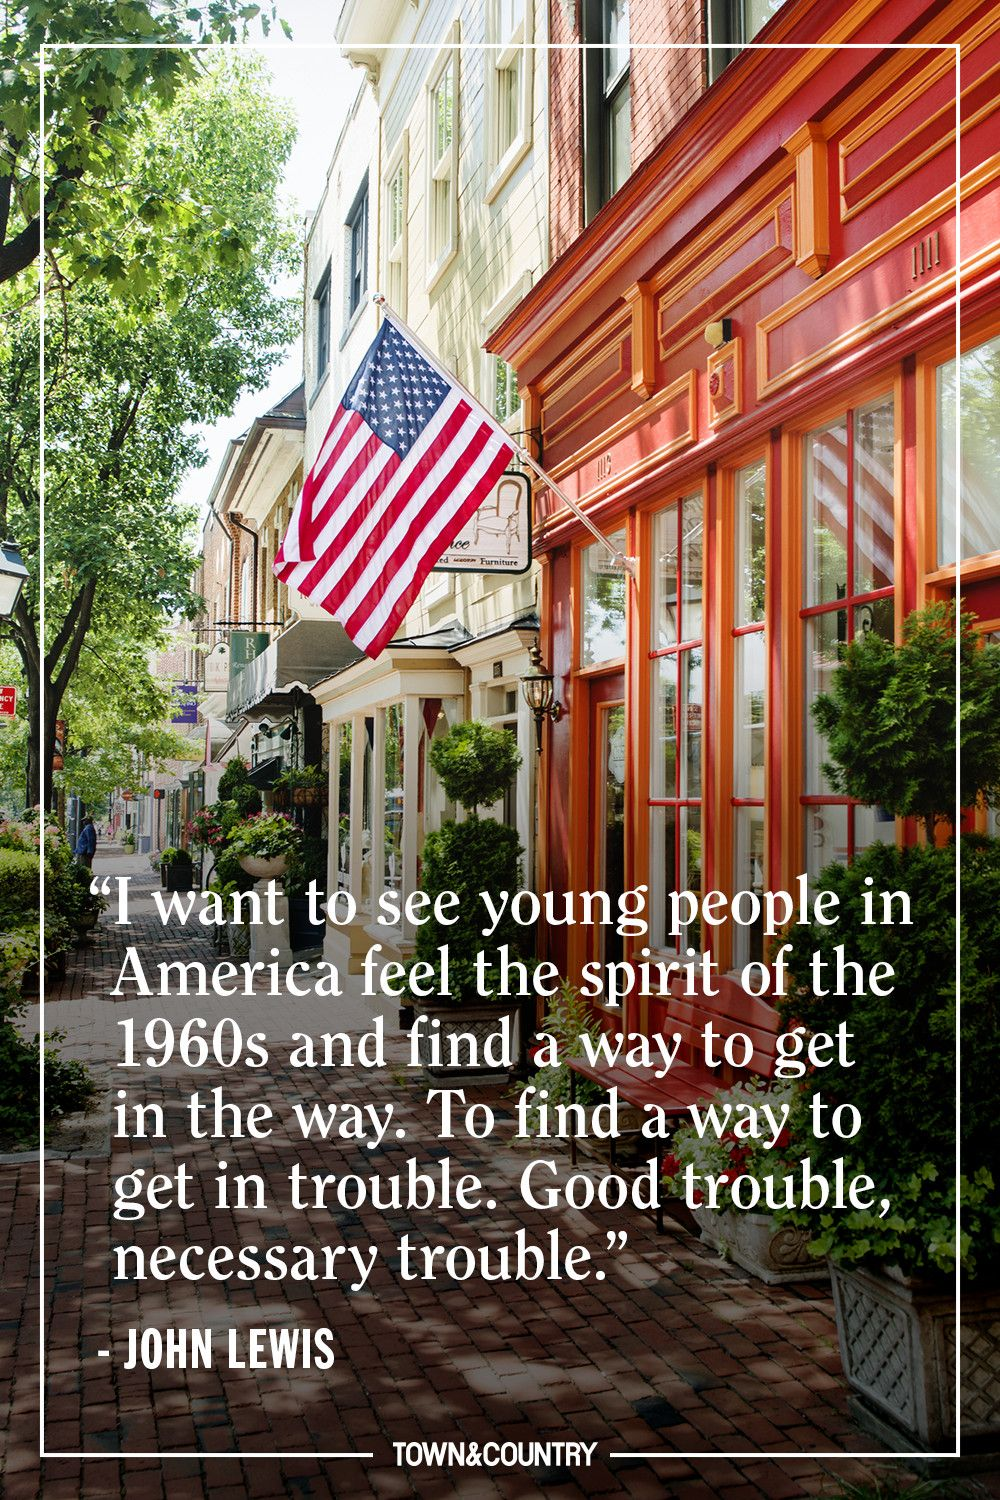 """""""I want to see young people in America feel the spirit of the 1960s and find a way to get in the way. To find a way to get in trouble. Good trouble, necessary trouble."""" — John Lewis"""